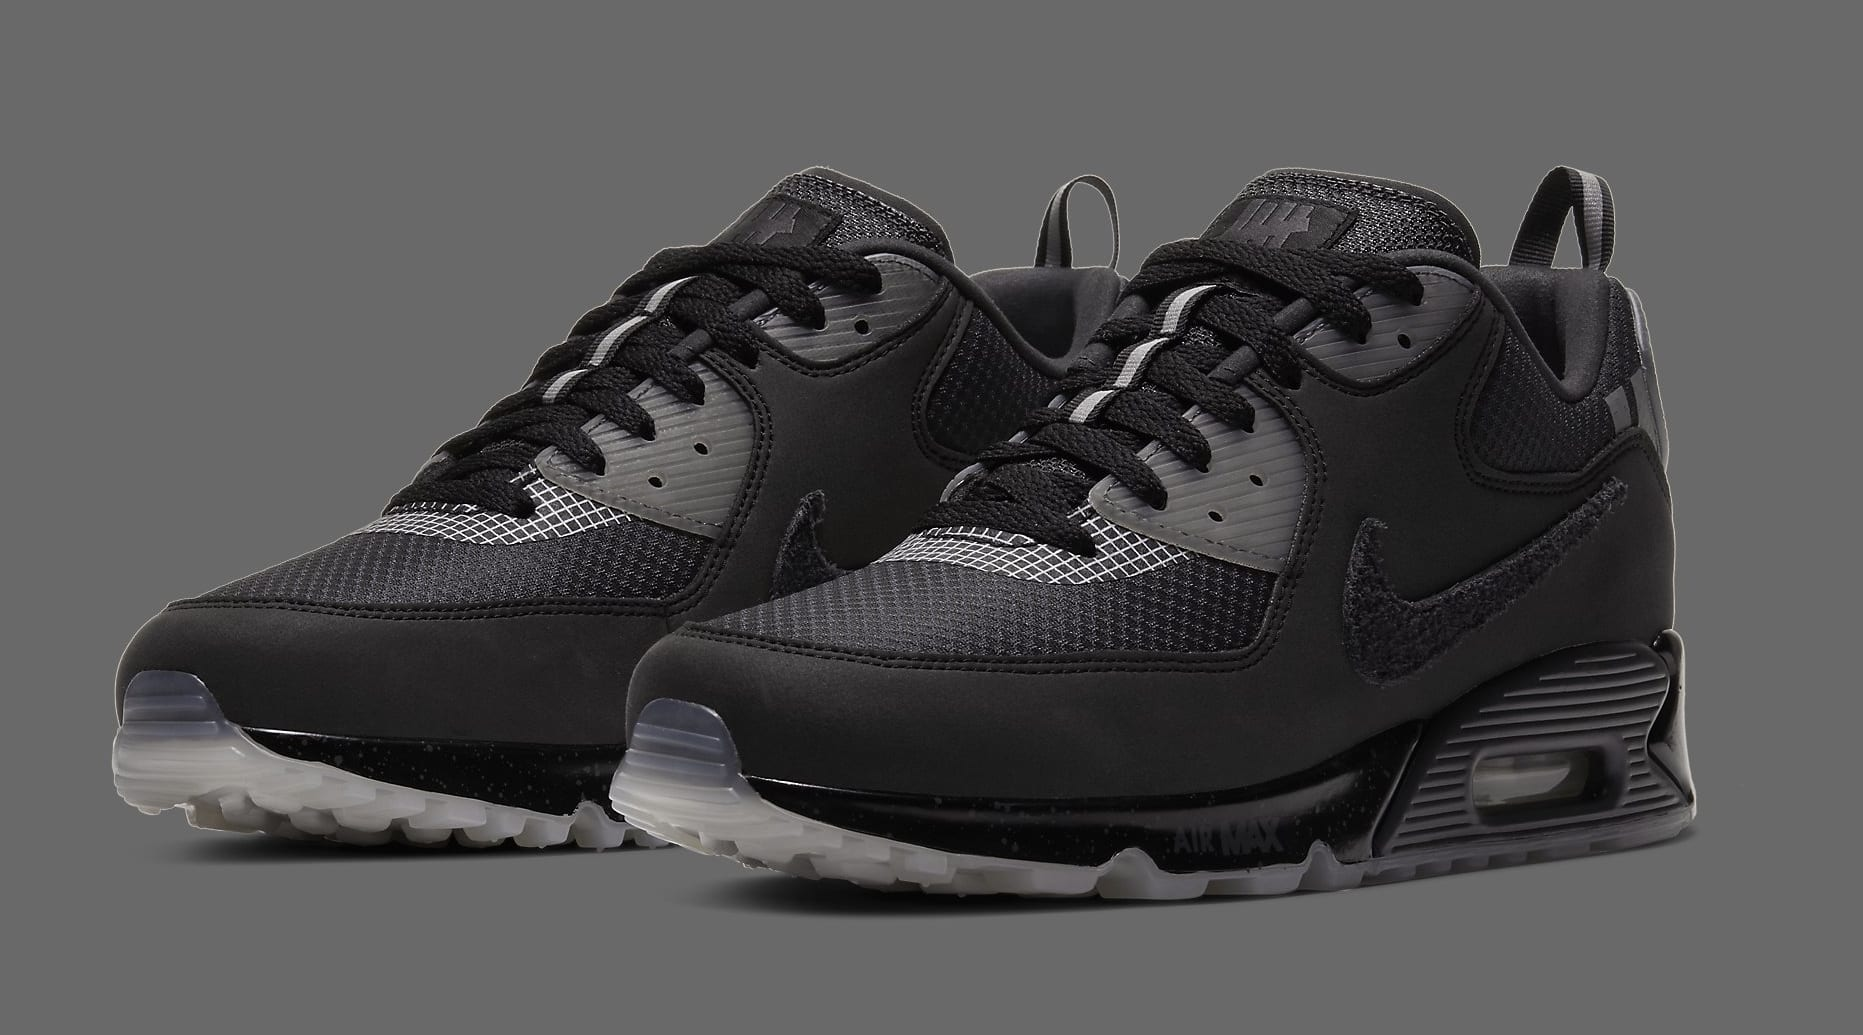 undefeated-nike-air-max-90-black-cq2289-002-pair